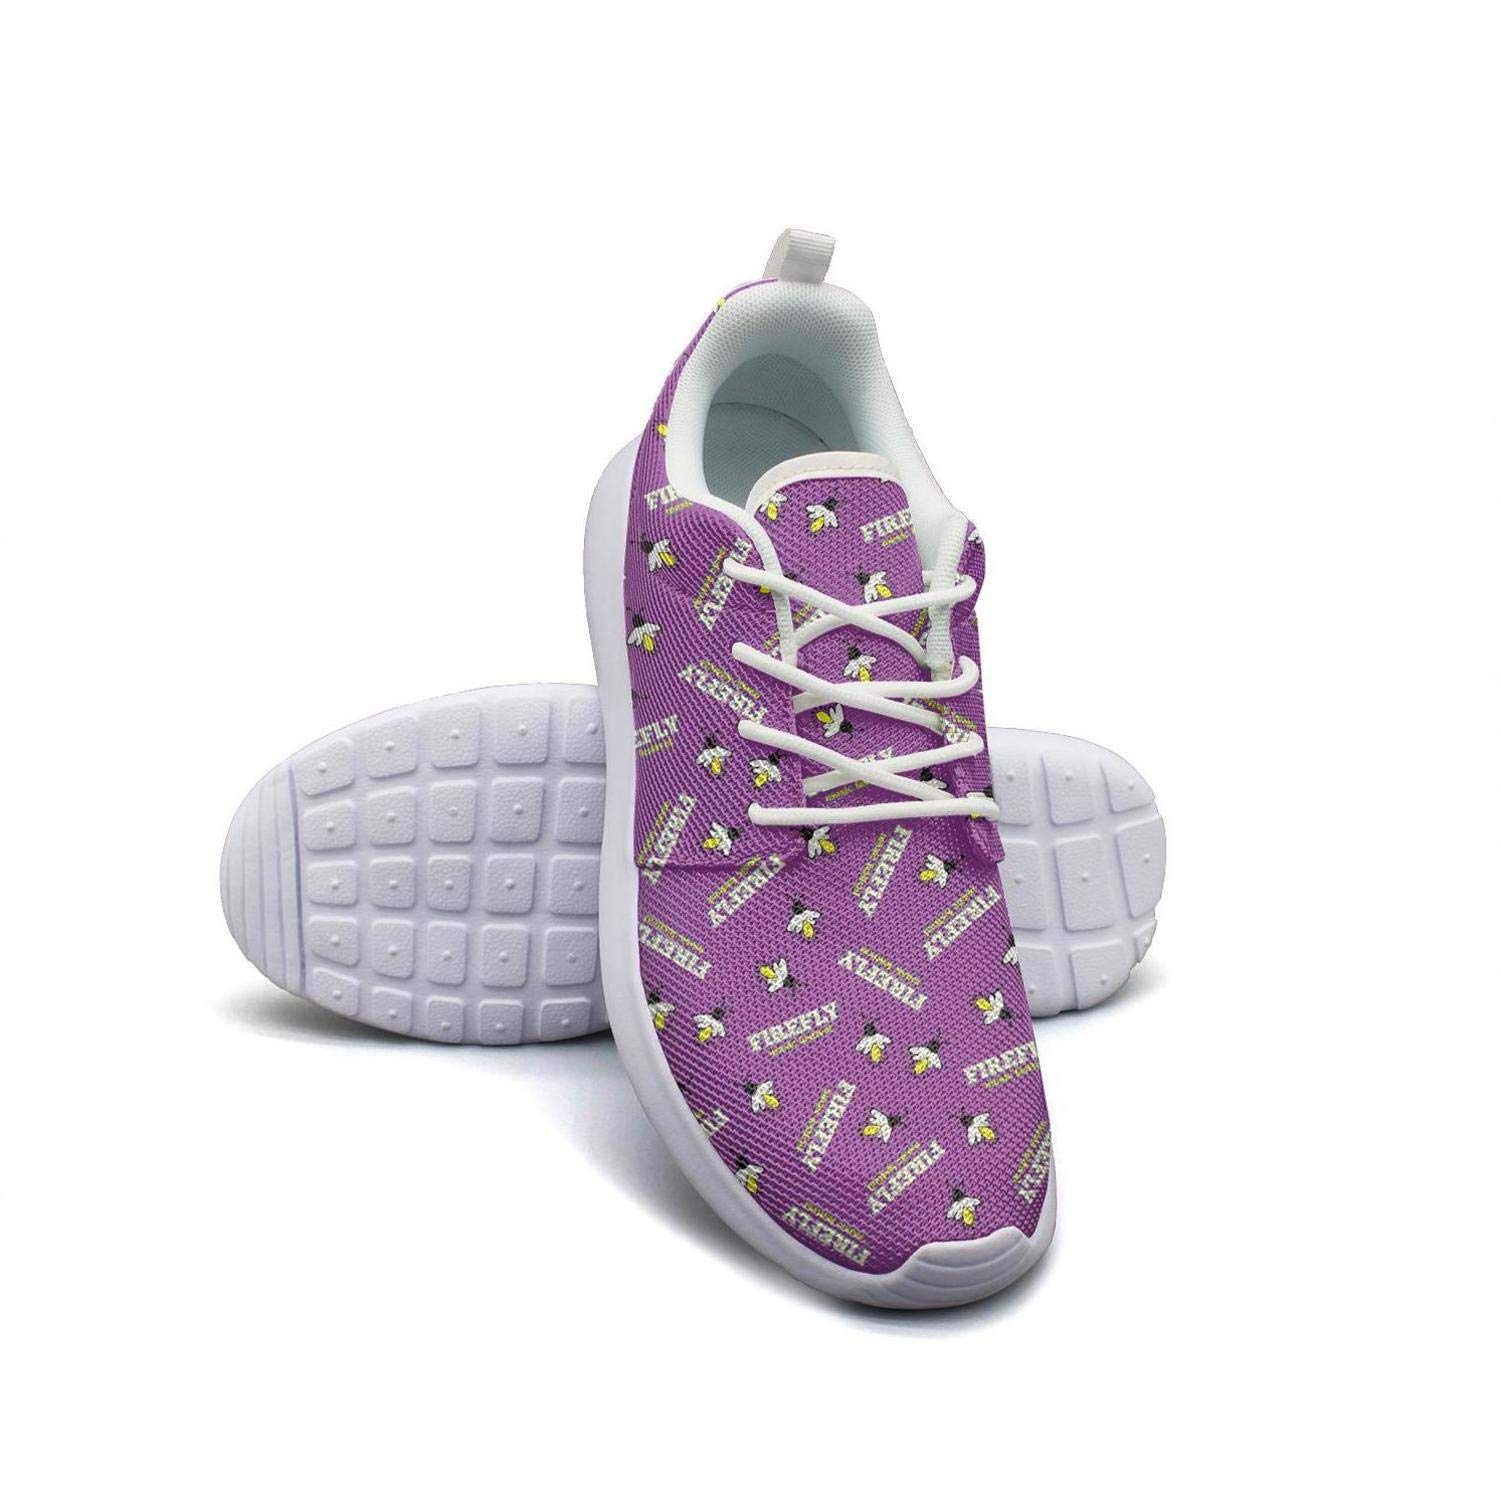 Happy Firefly Music Festival Purple Lady Skateboard Casual Shoes Care sportsshoes